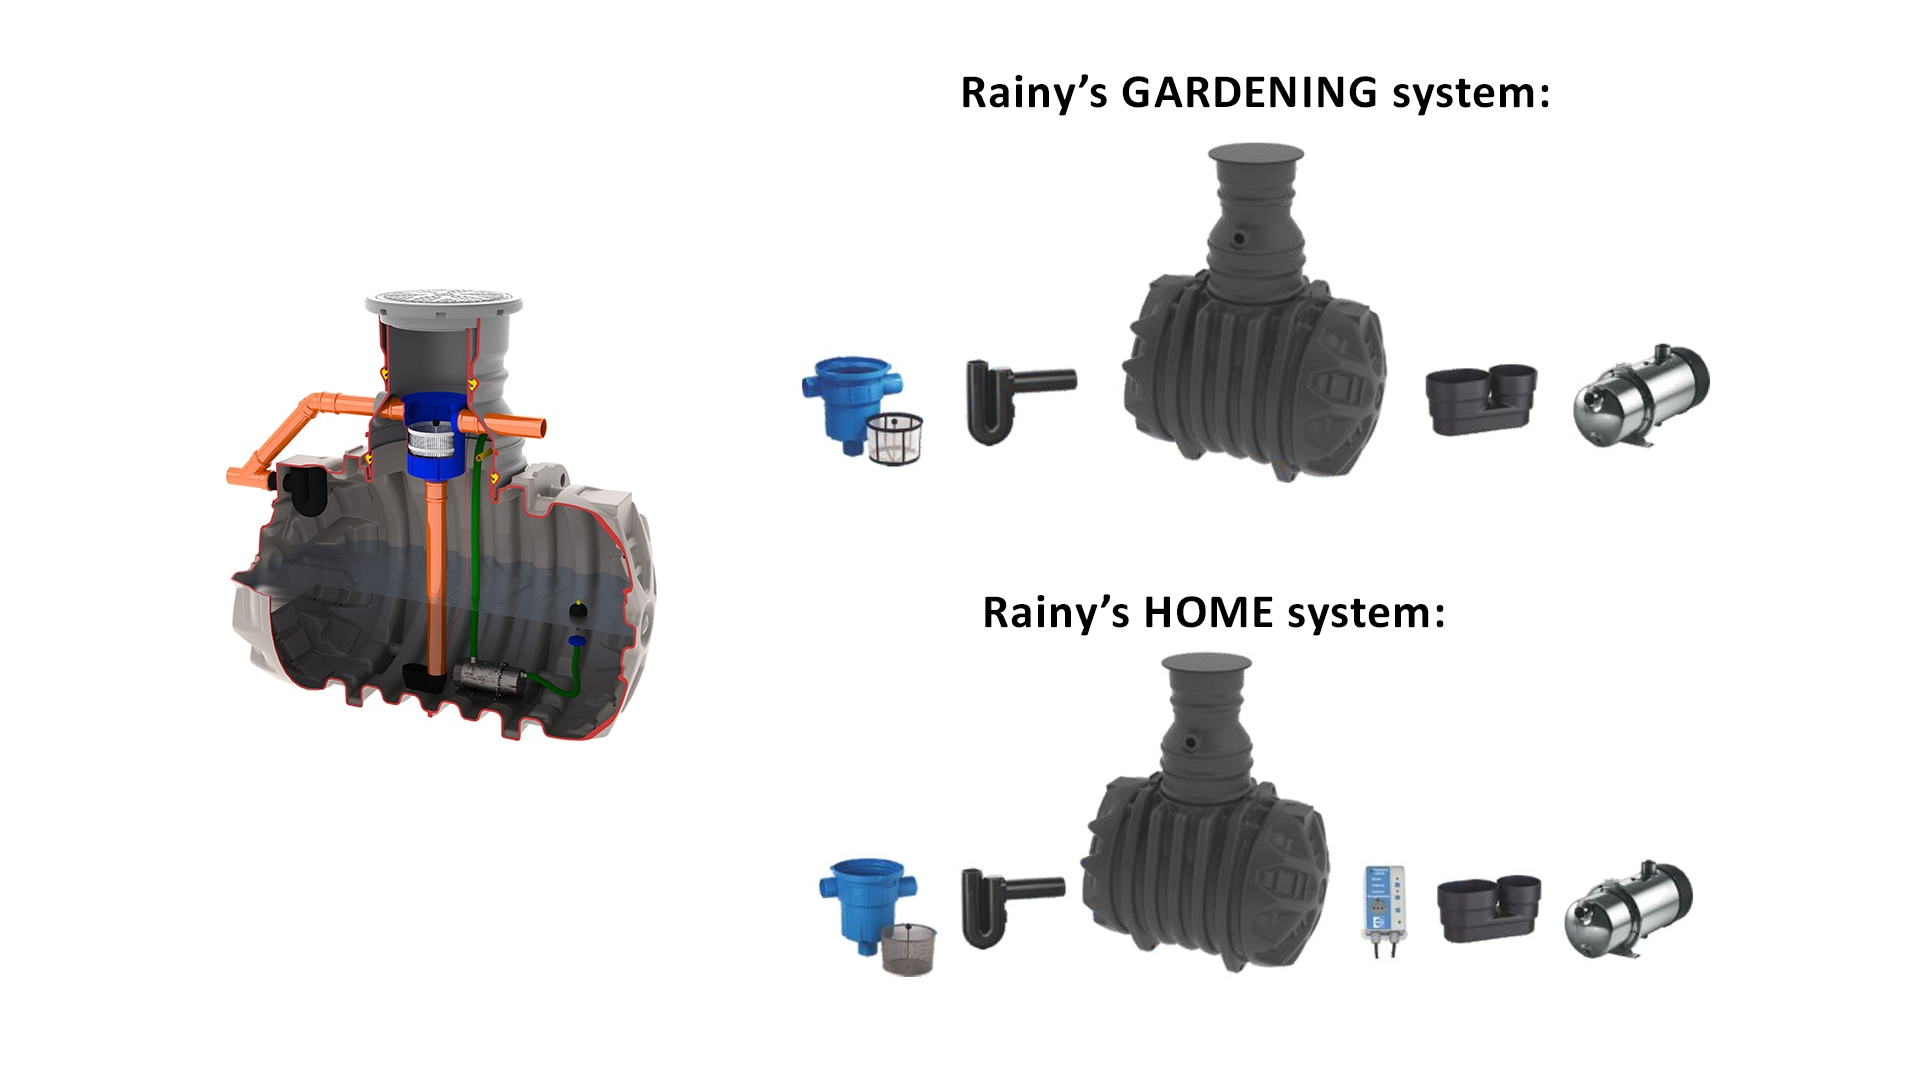 Gallery image 0 - Rainy's with the underground polyethylene tank. To fill the tank with rainwater the pipeline from the roof shall be connected. No problem with overfilling of the tank, since excess water will be directed to the sewer or drainage system.